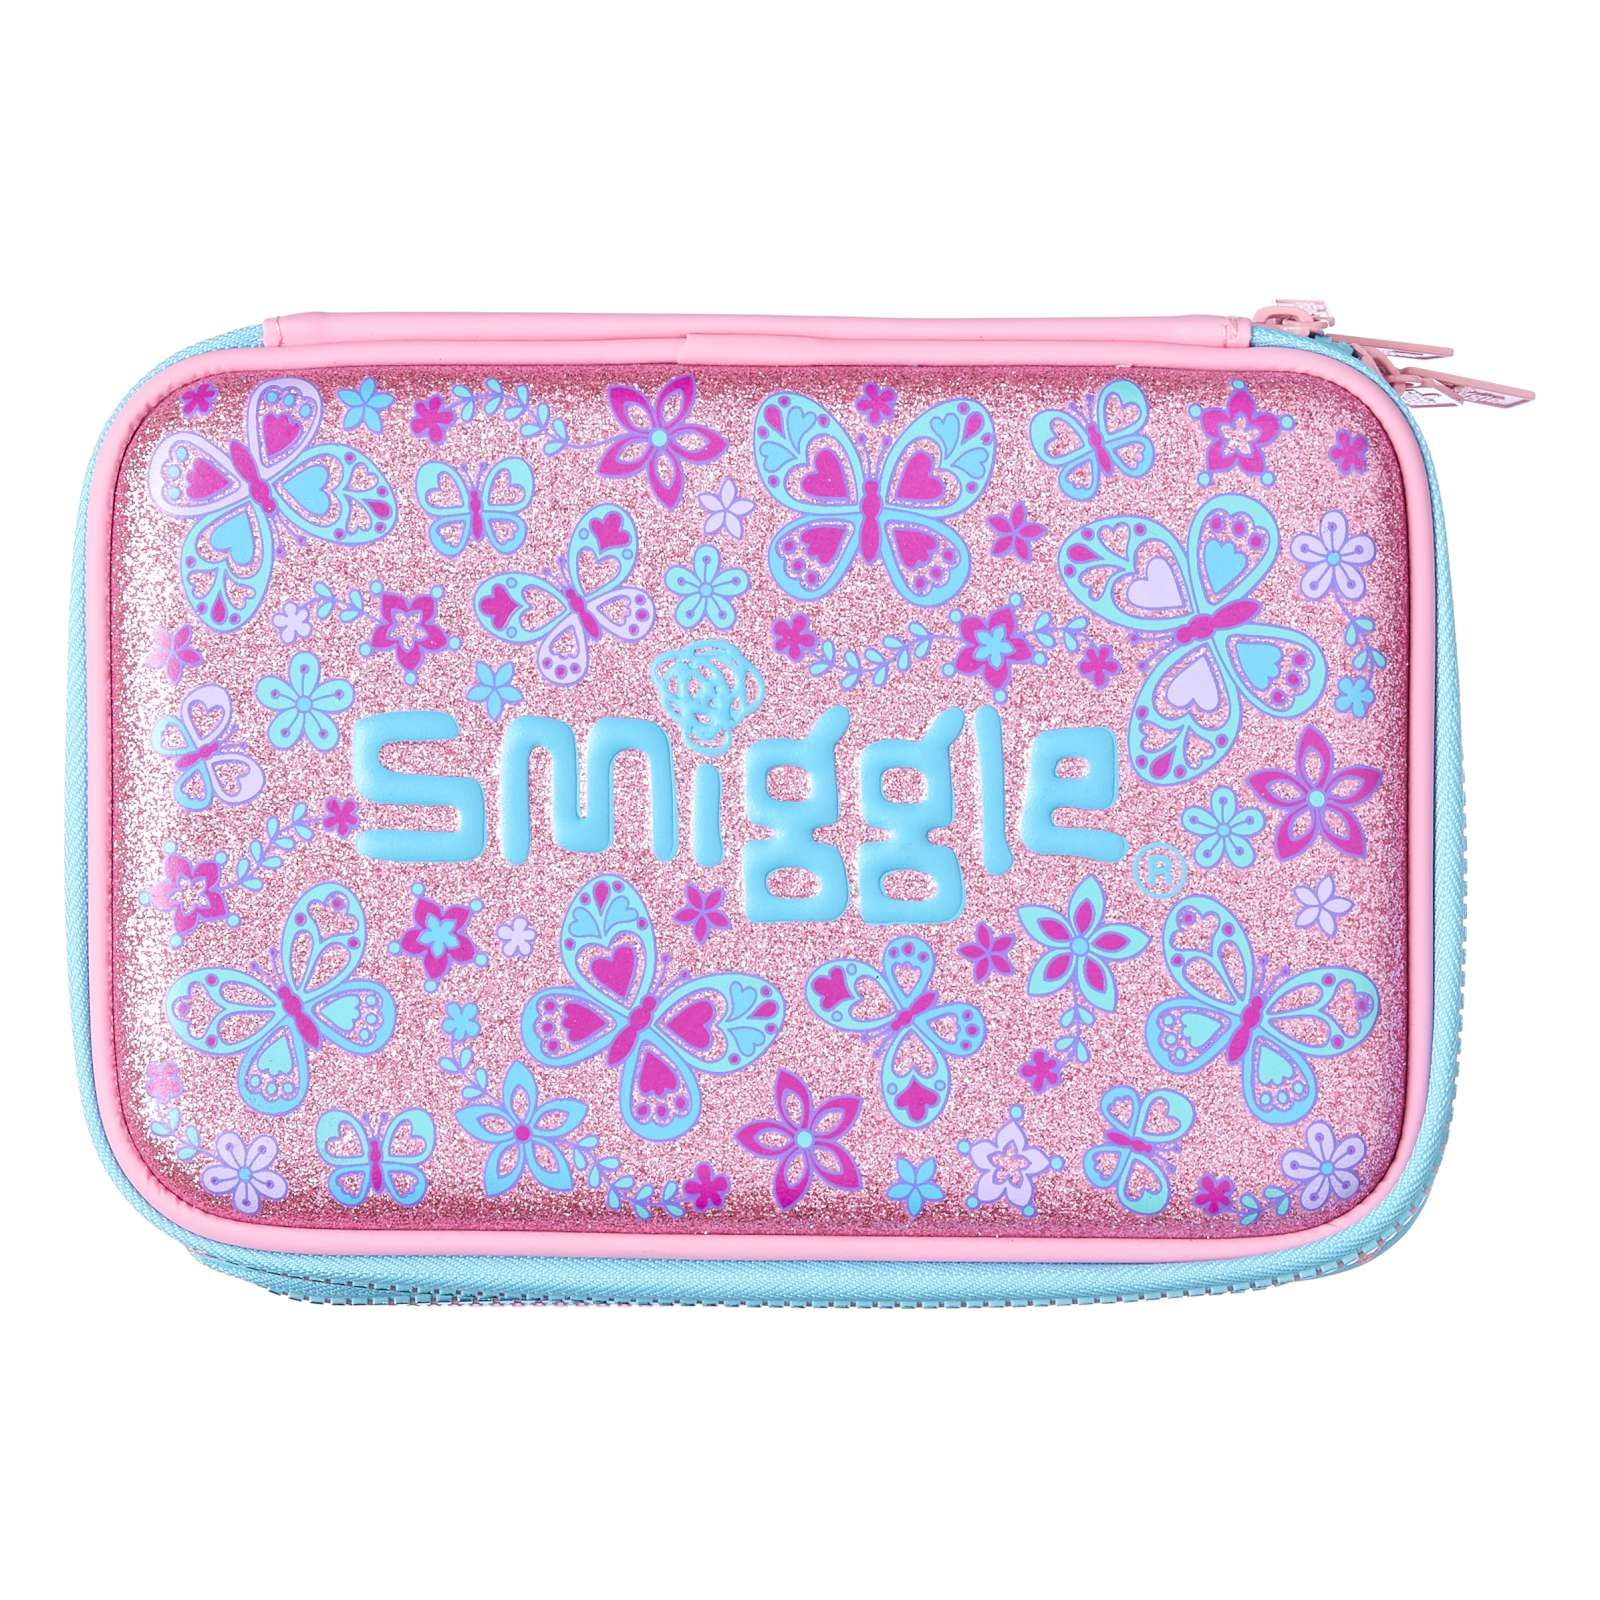 hot sale online a74fd 6b8c8 Bizz Double Up Hardtop Pencil Case | Smiggle | Smiggle Hardtop ...